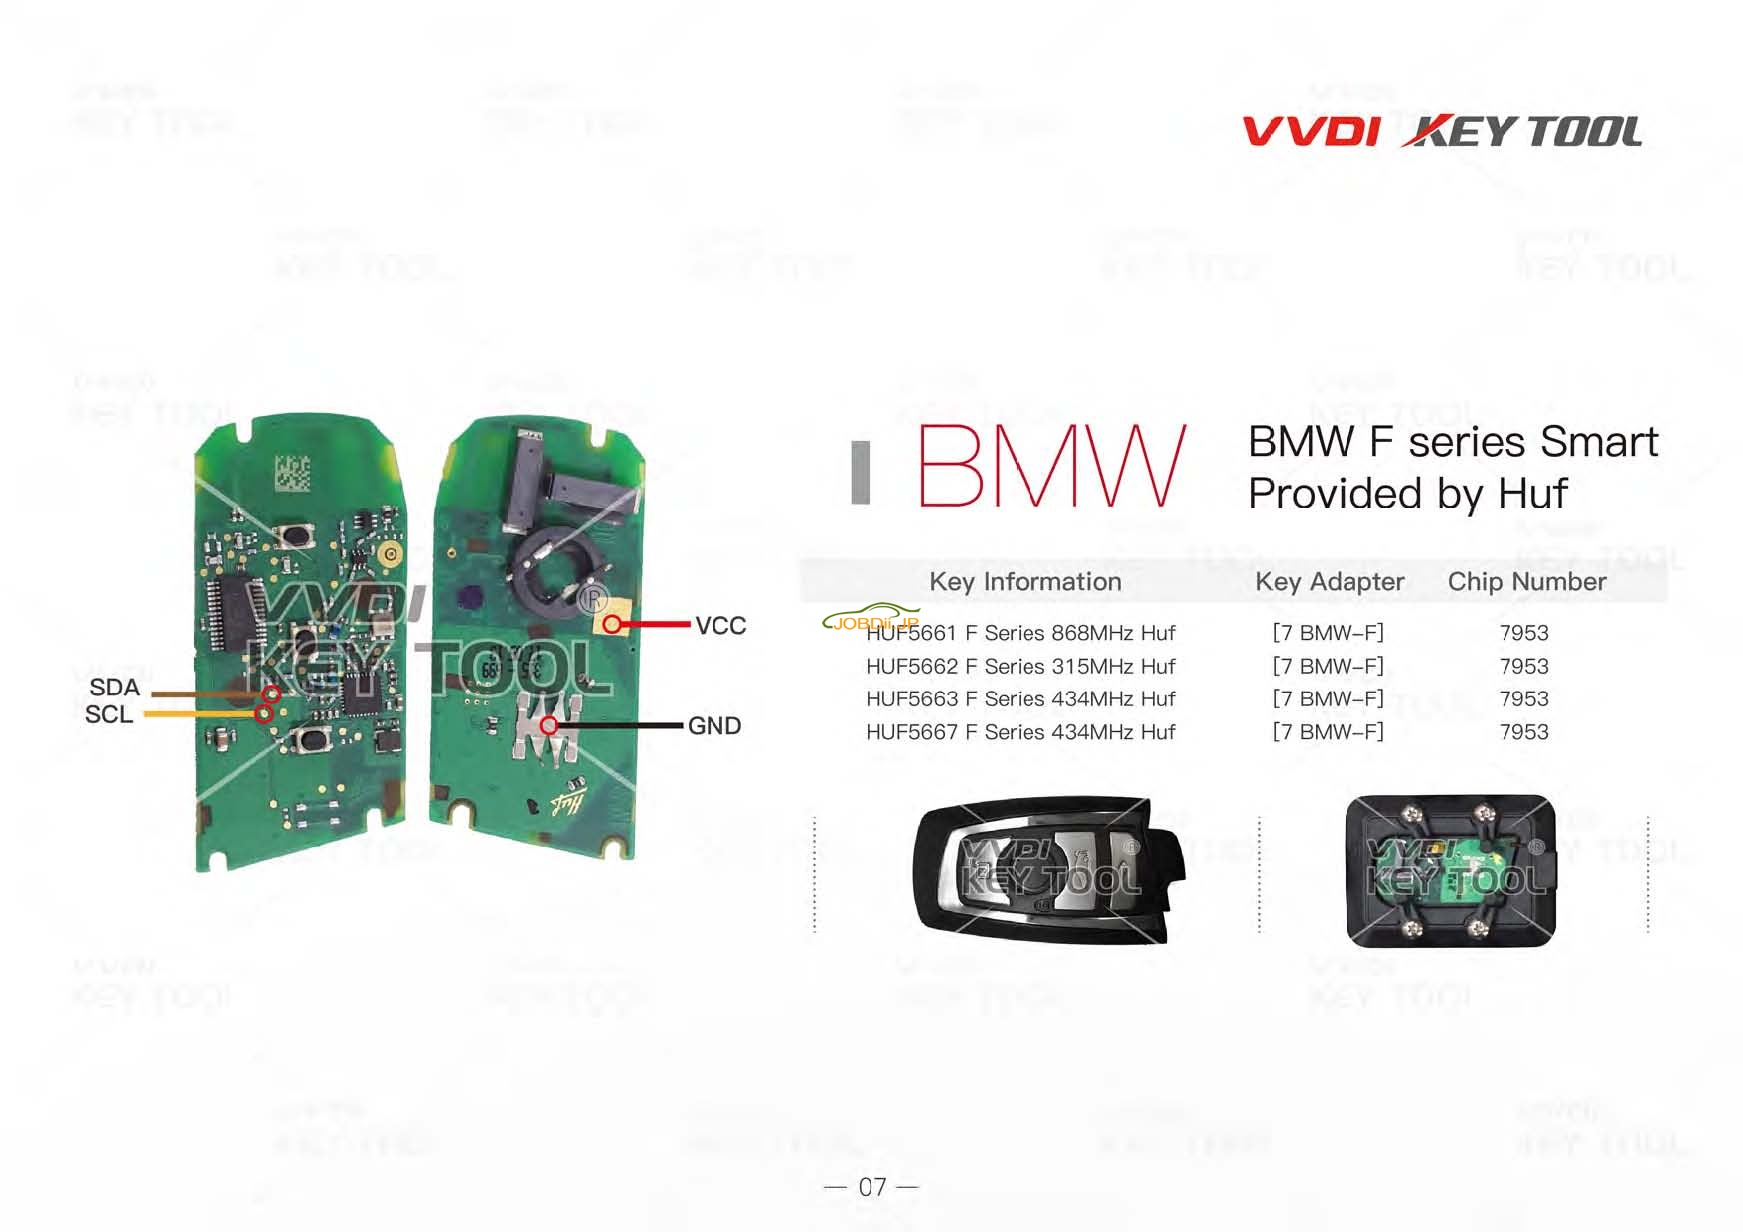 vvdi-key-tool-renew-diagram-07